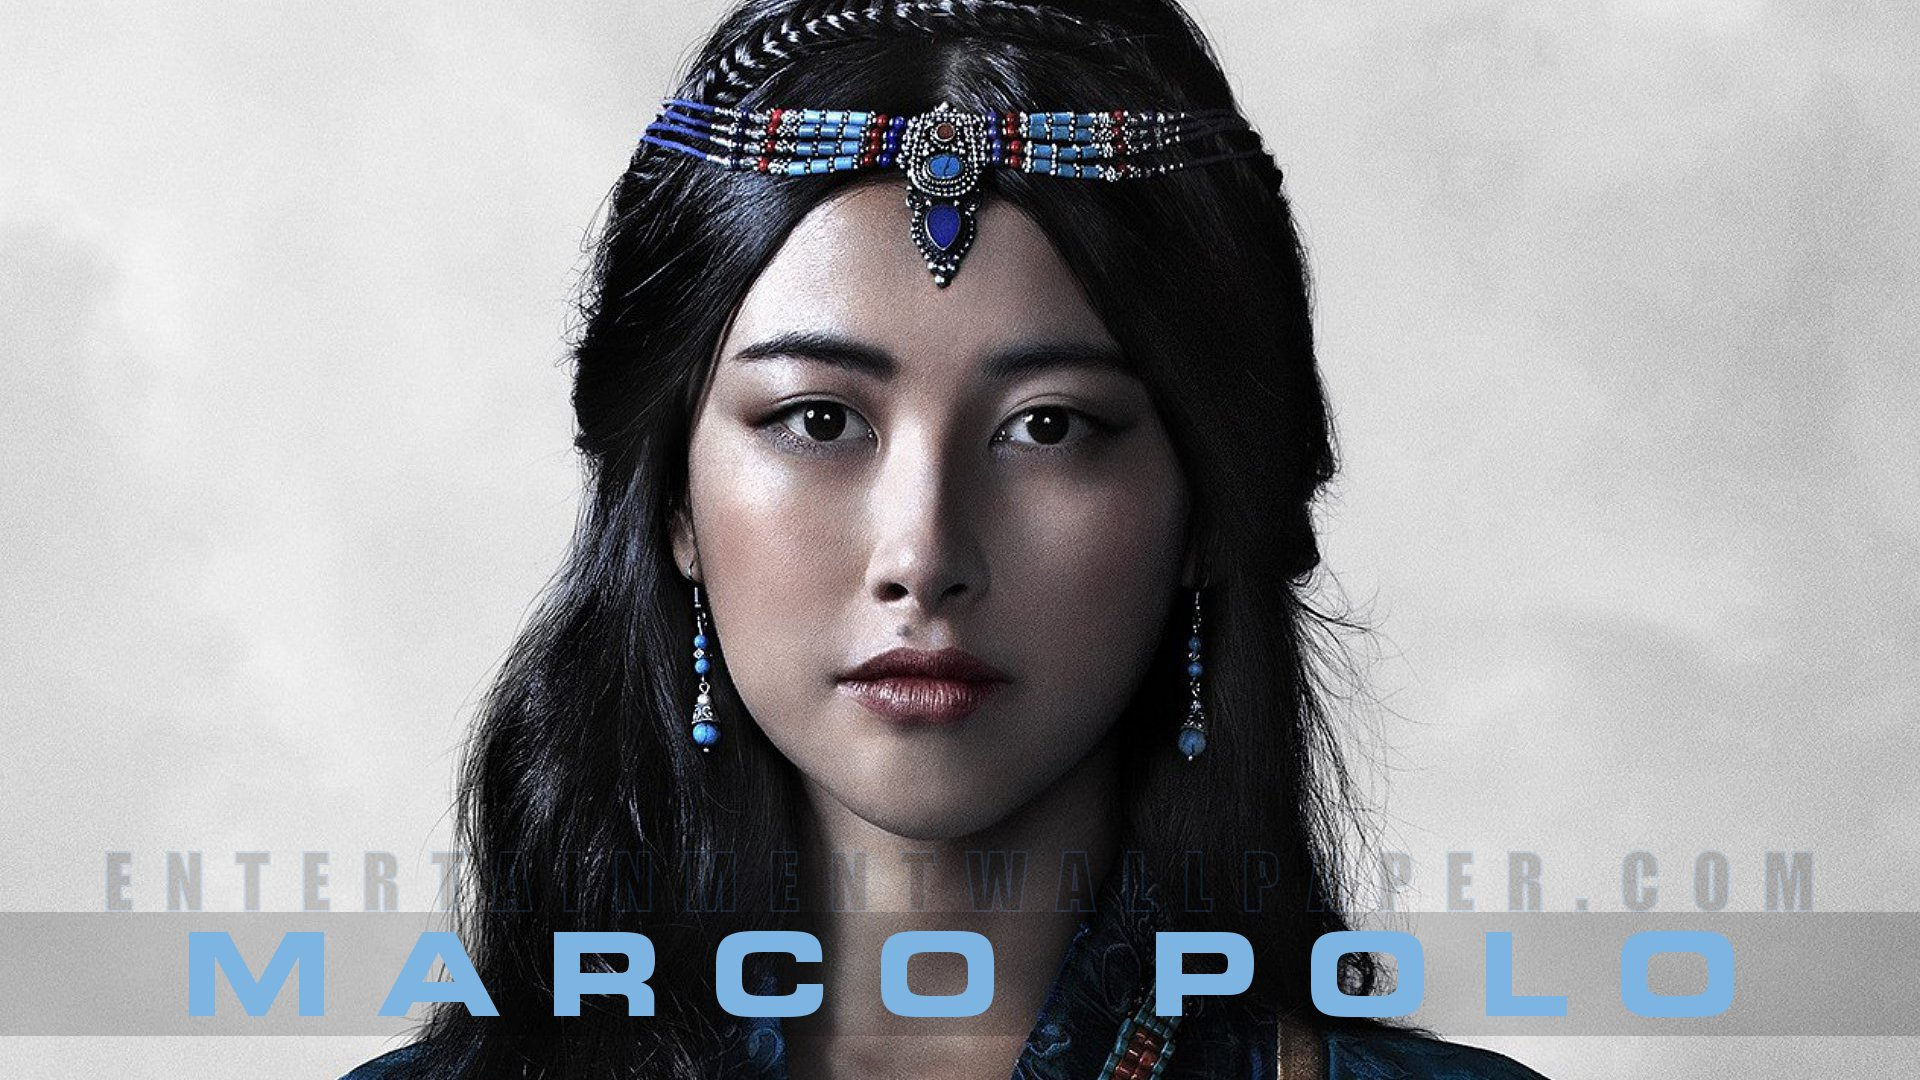 Marco Polo Wallpaper - WallpaperSafari - 400.5KB